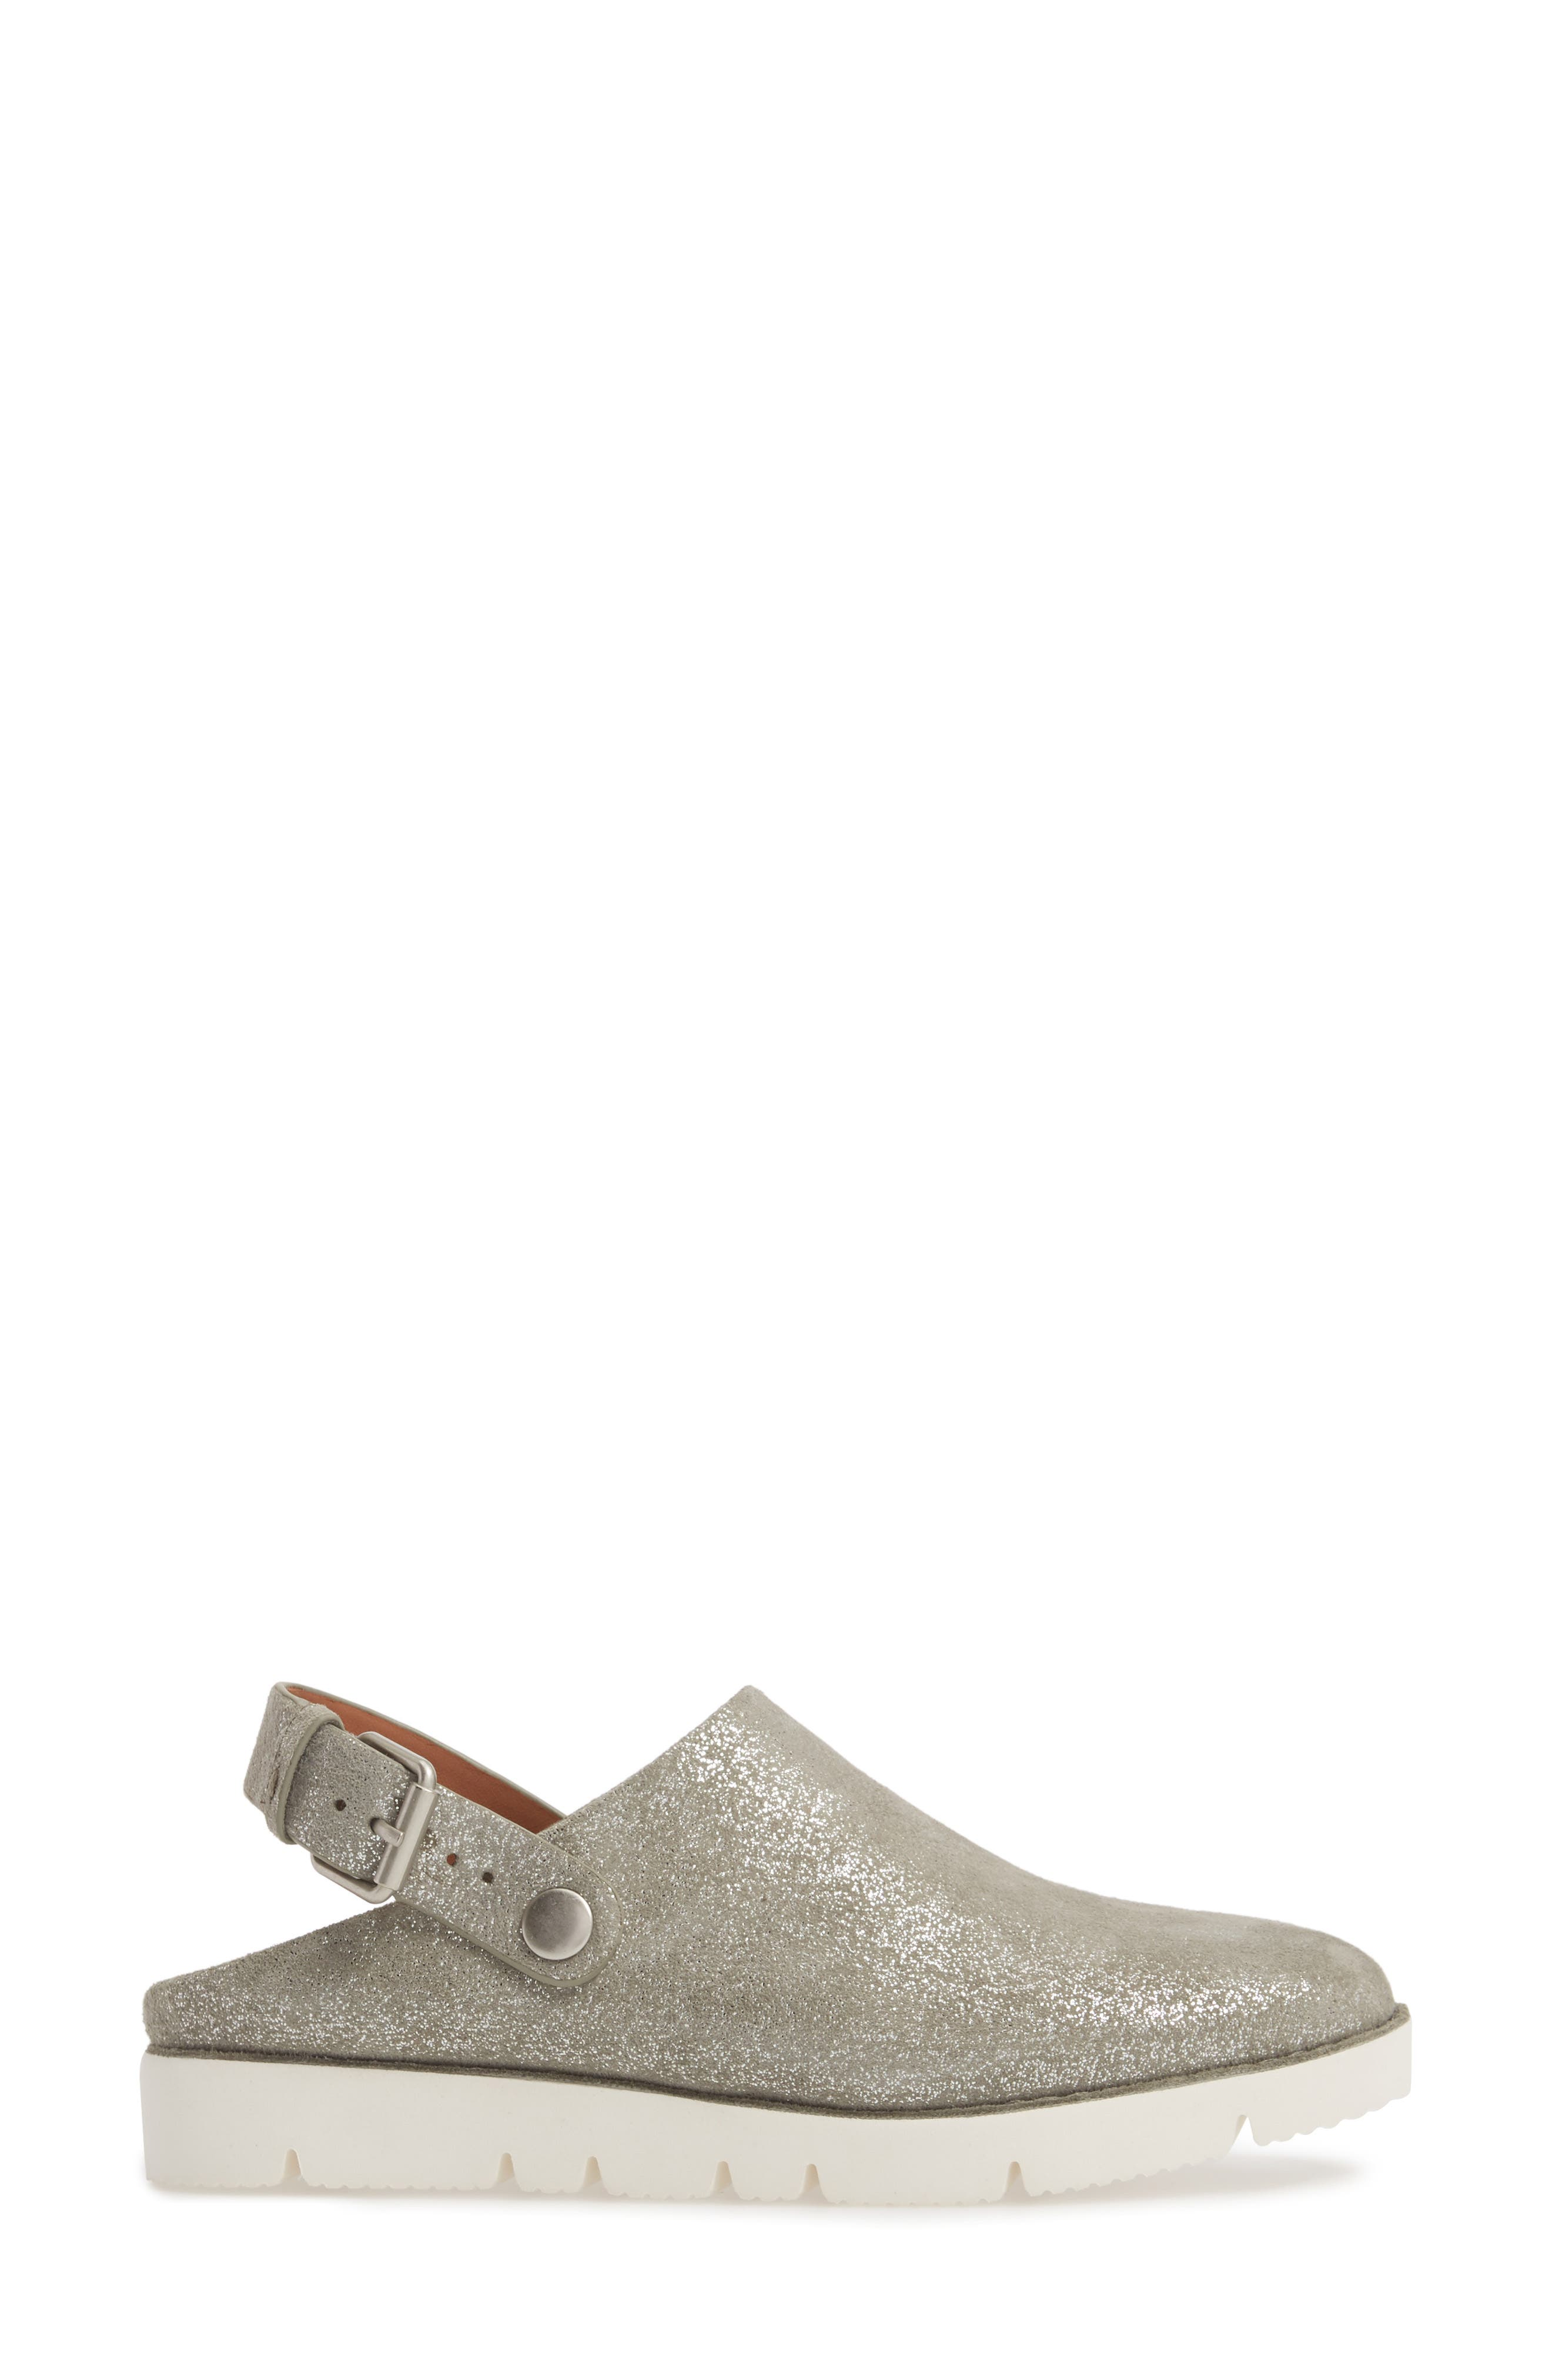 GENTLE SOULS BY KENNETH COLE, Esther Convertible Wedge, Alternate thumbnail 3, color, LIGHT PEWTER METALLIC LEATHER